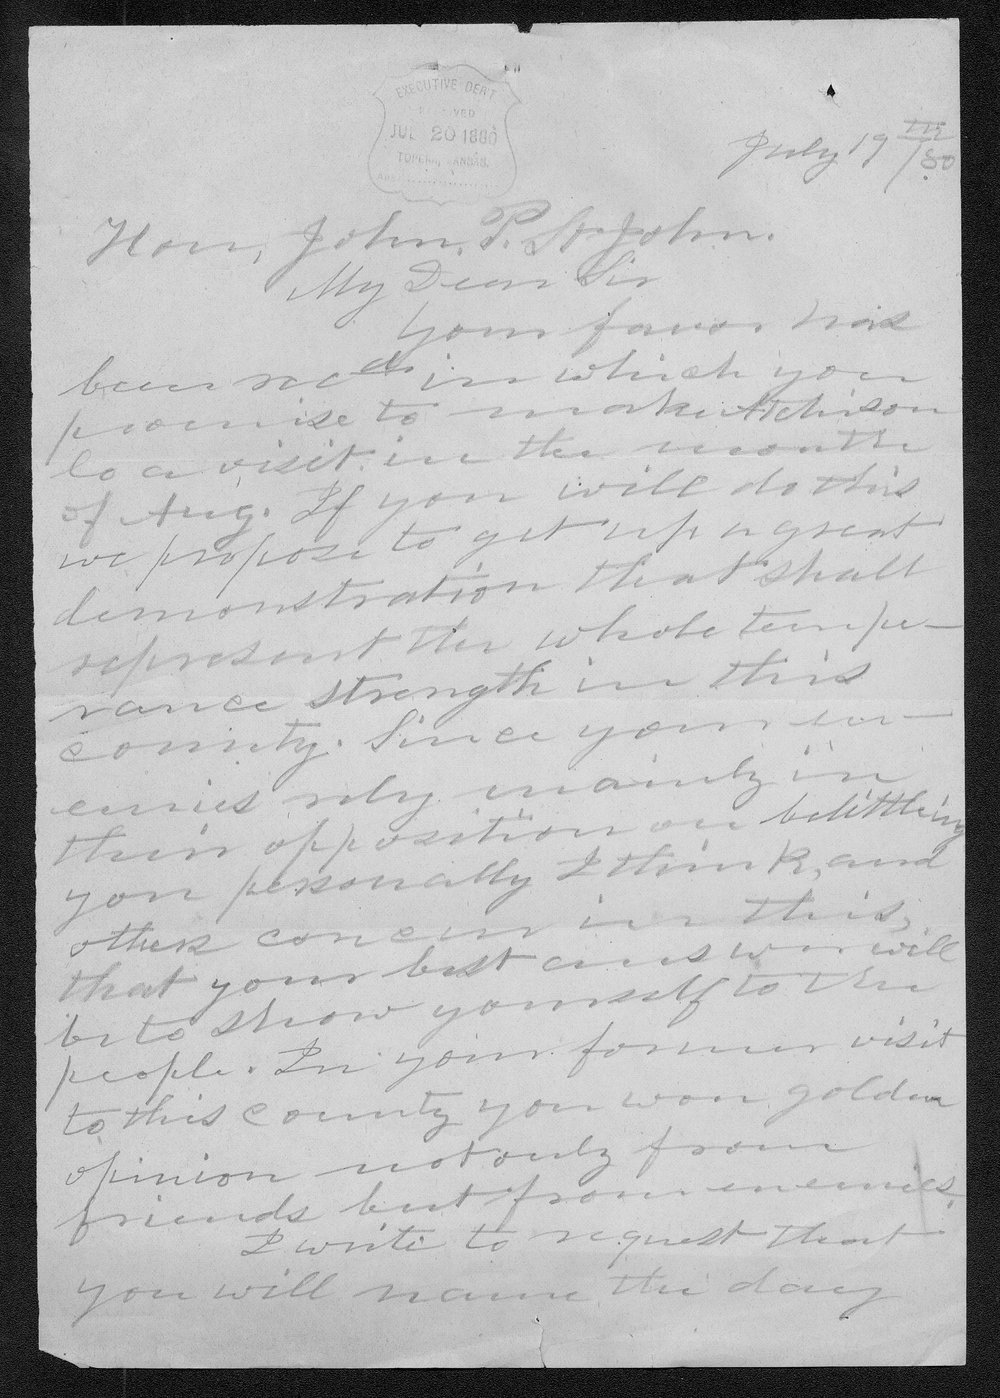 Pardee Butler to Governor John St. John - 1